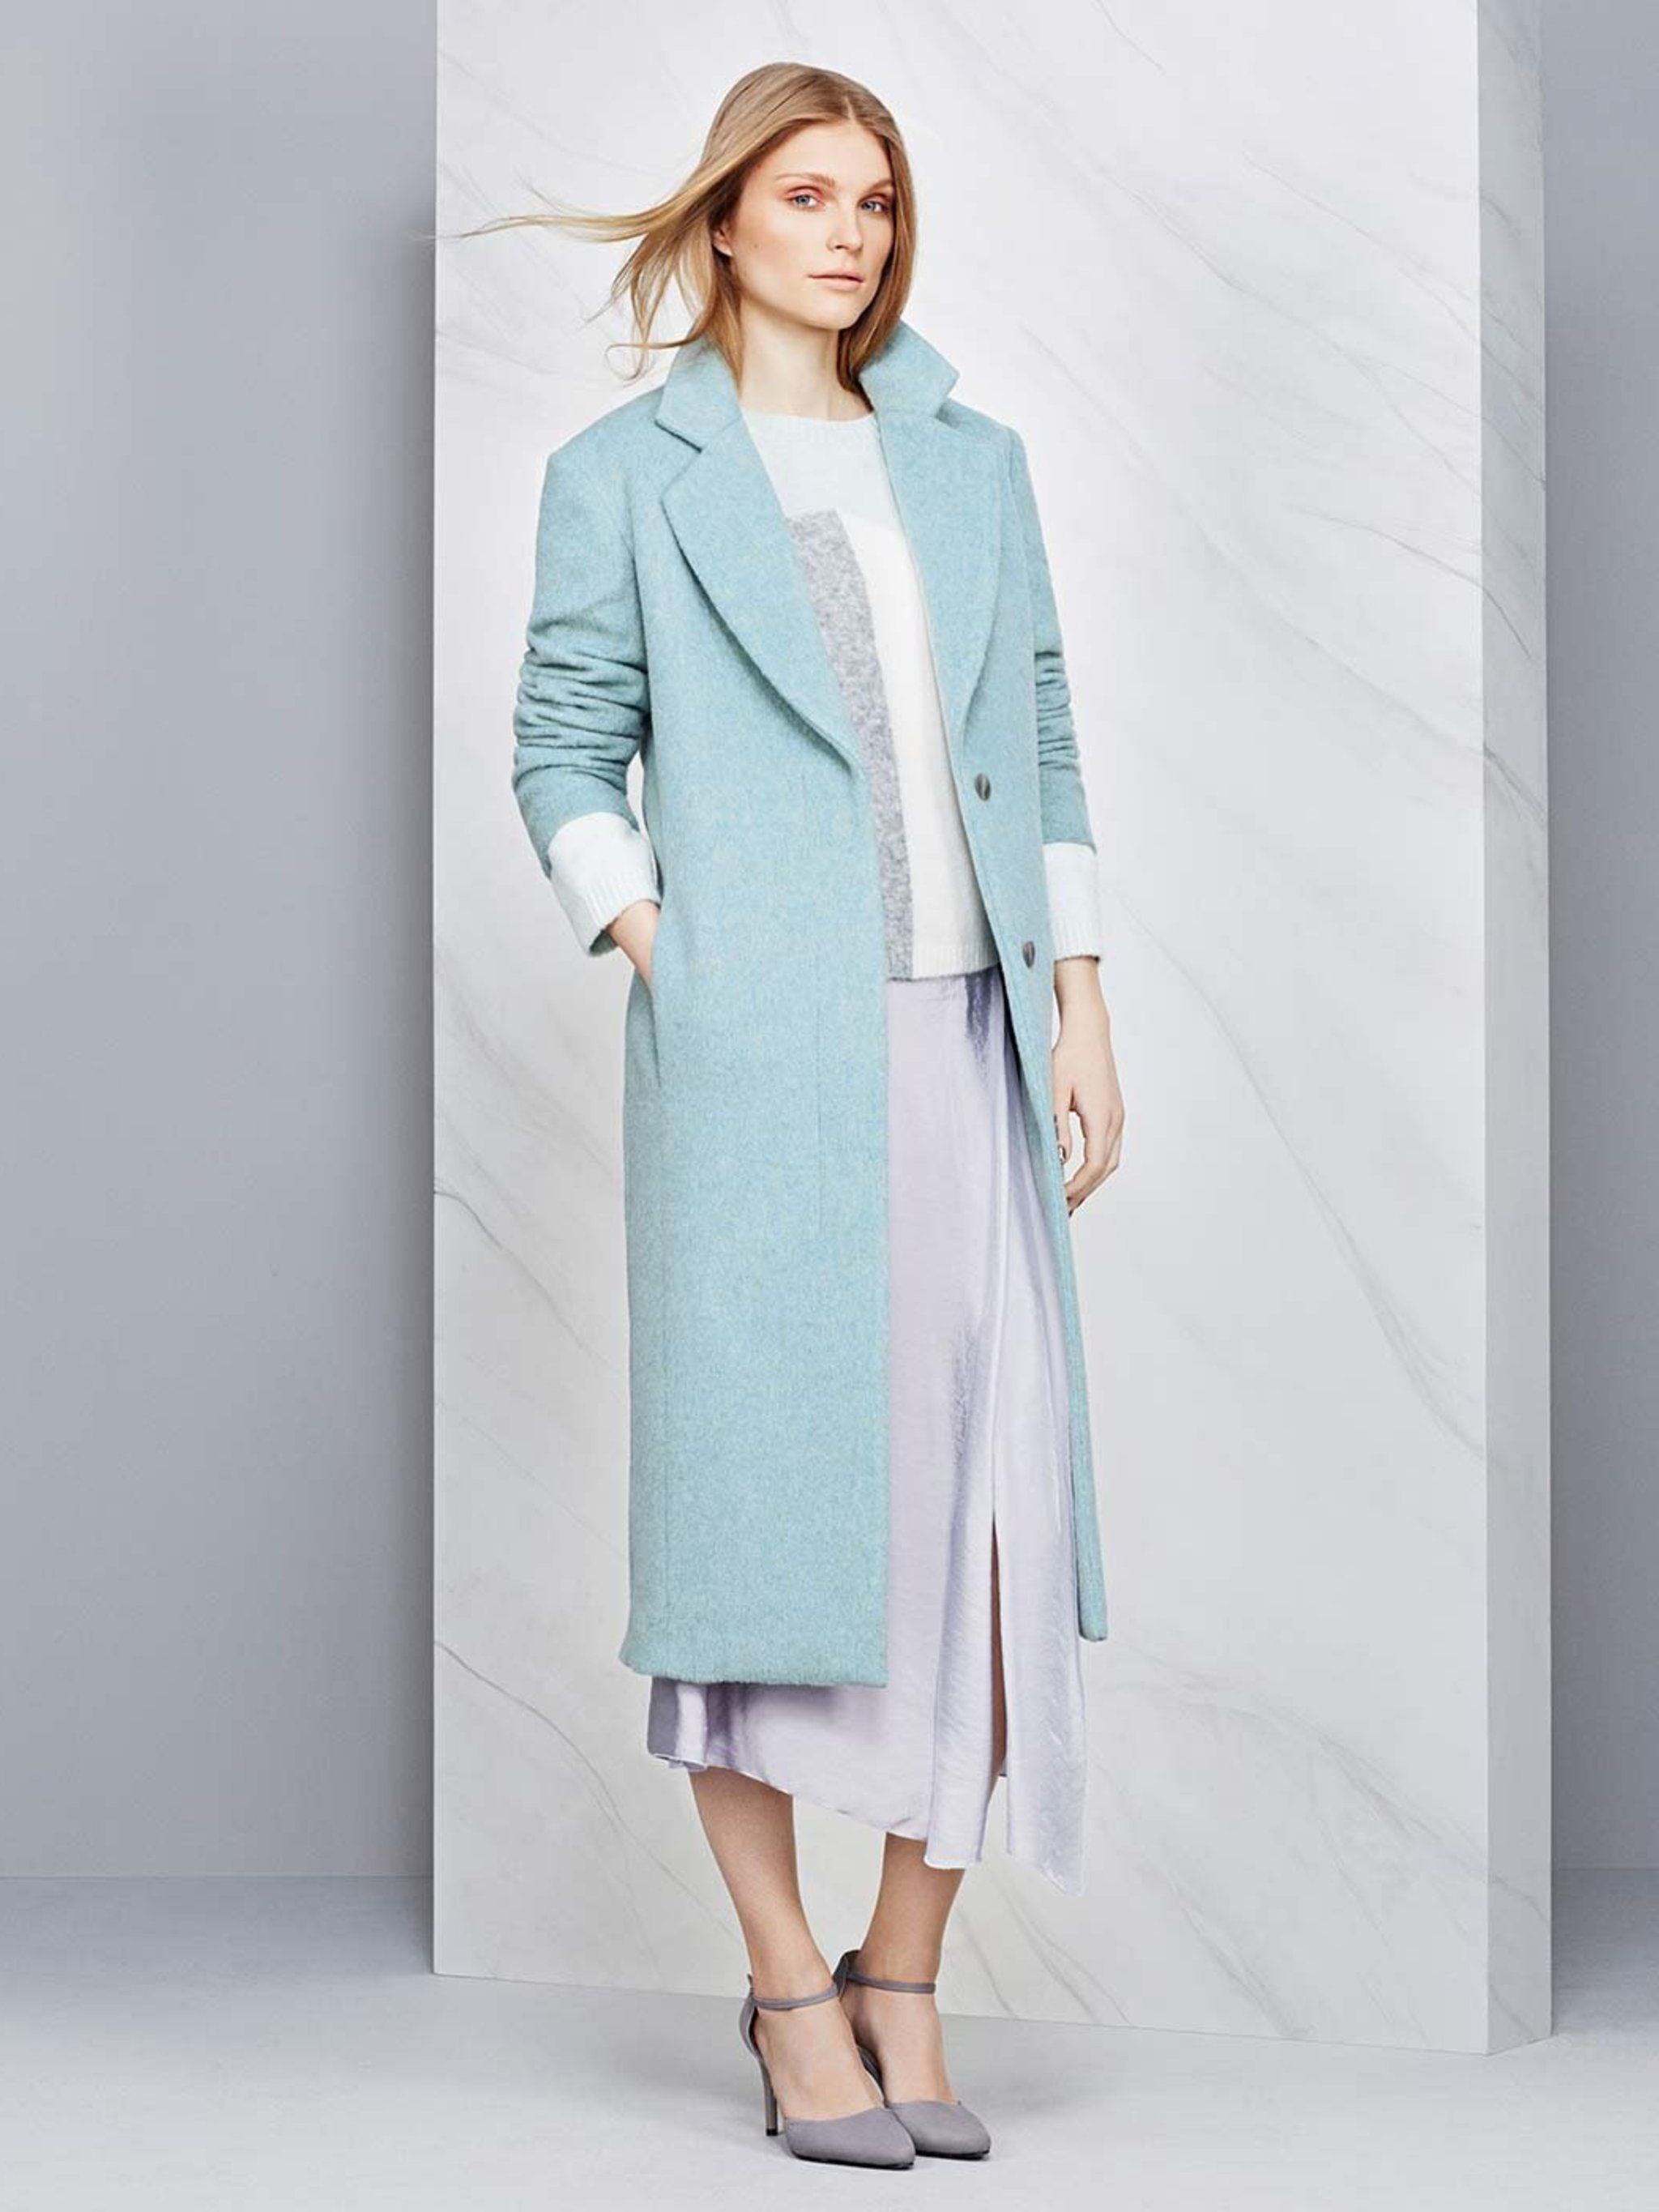 Unique Marks And Spencer Wedding Outfits Motif - All Wedding Dresses ...